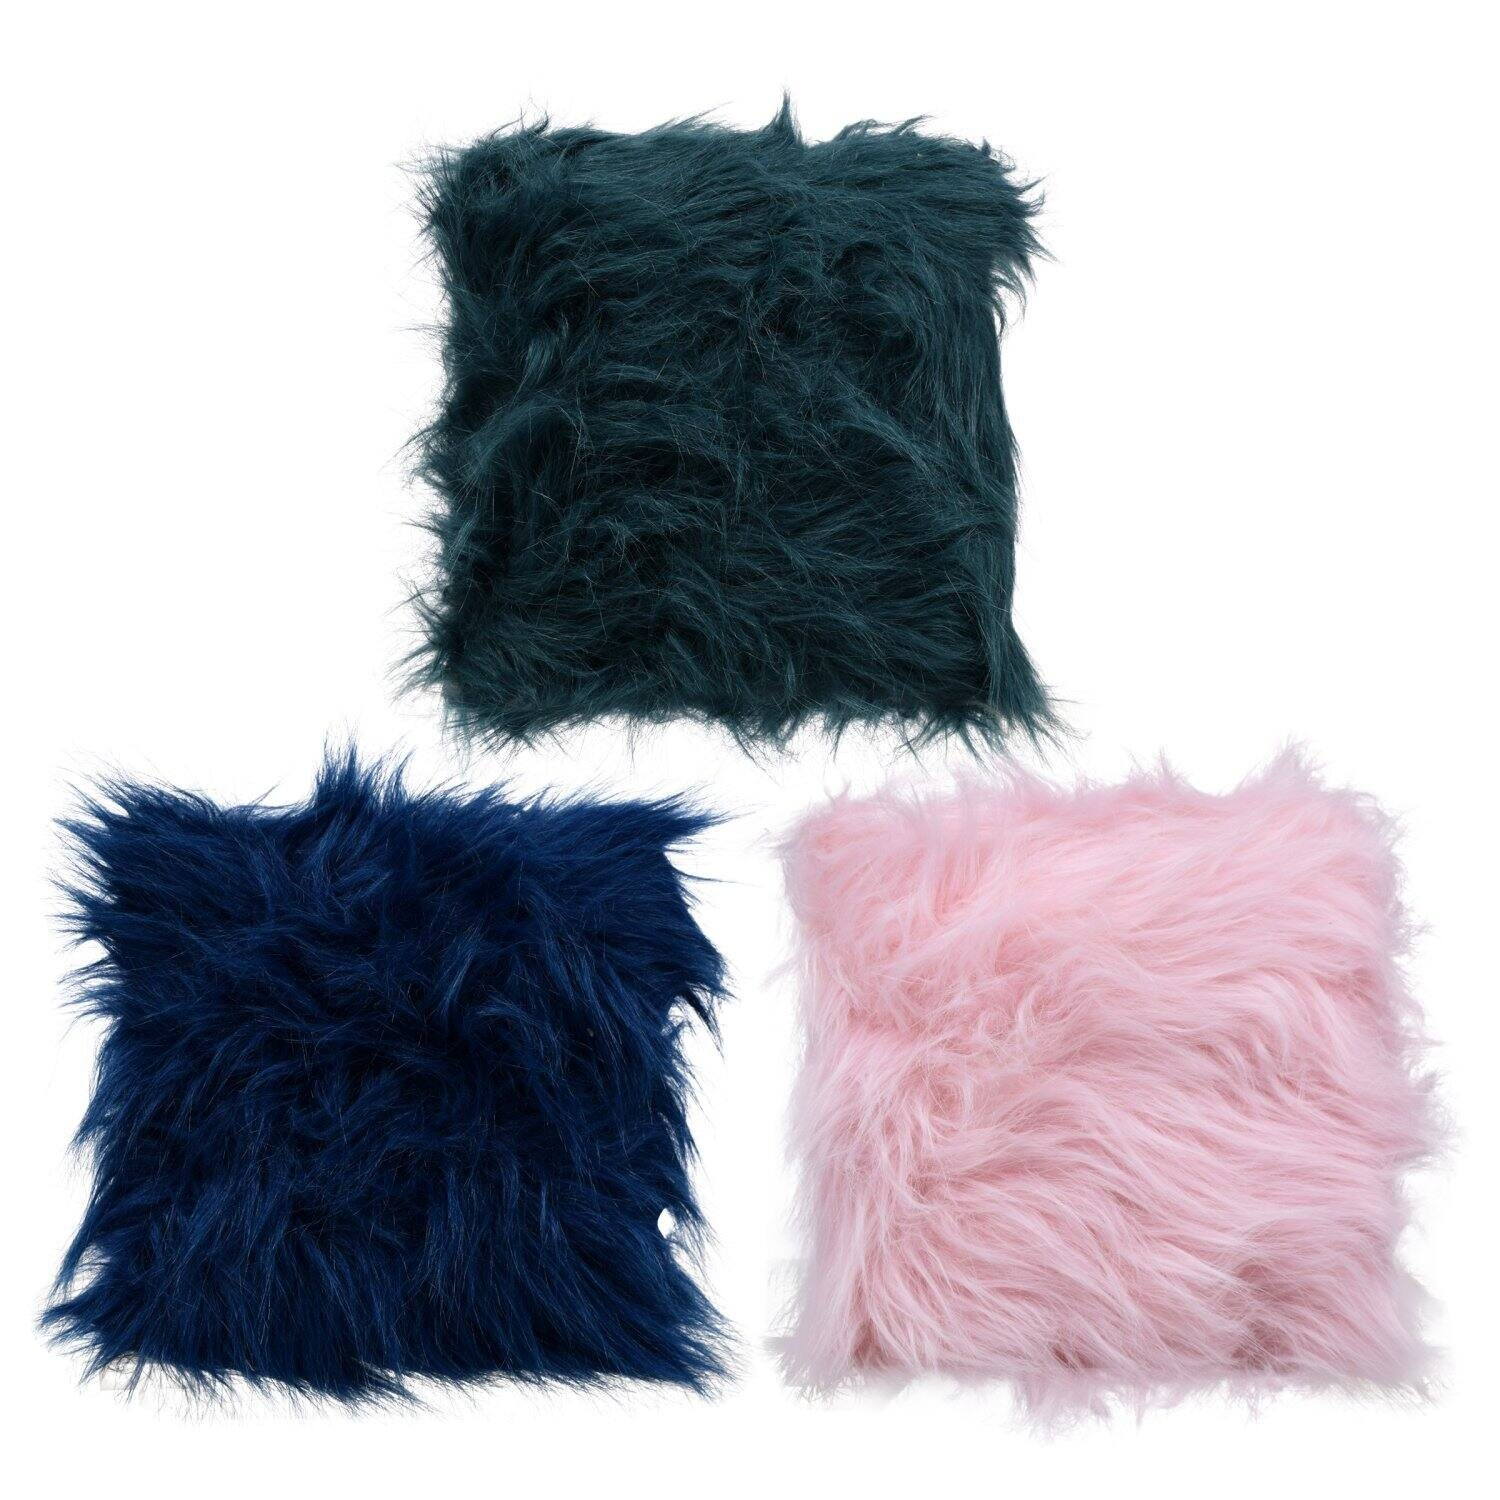 Colored Faux Fur Pillows, 8x8x2 in.